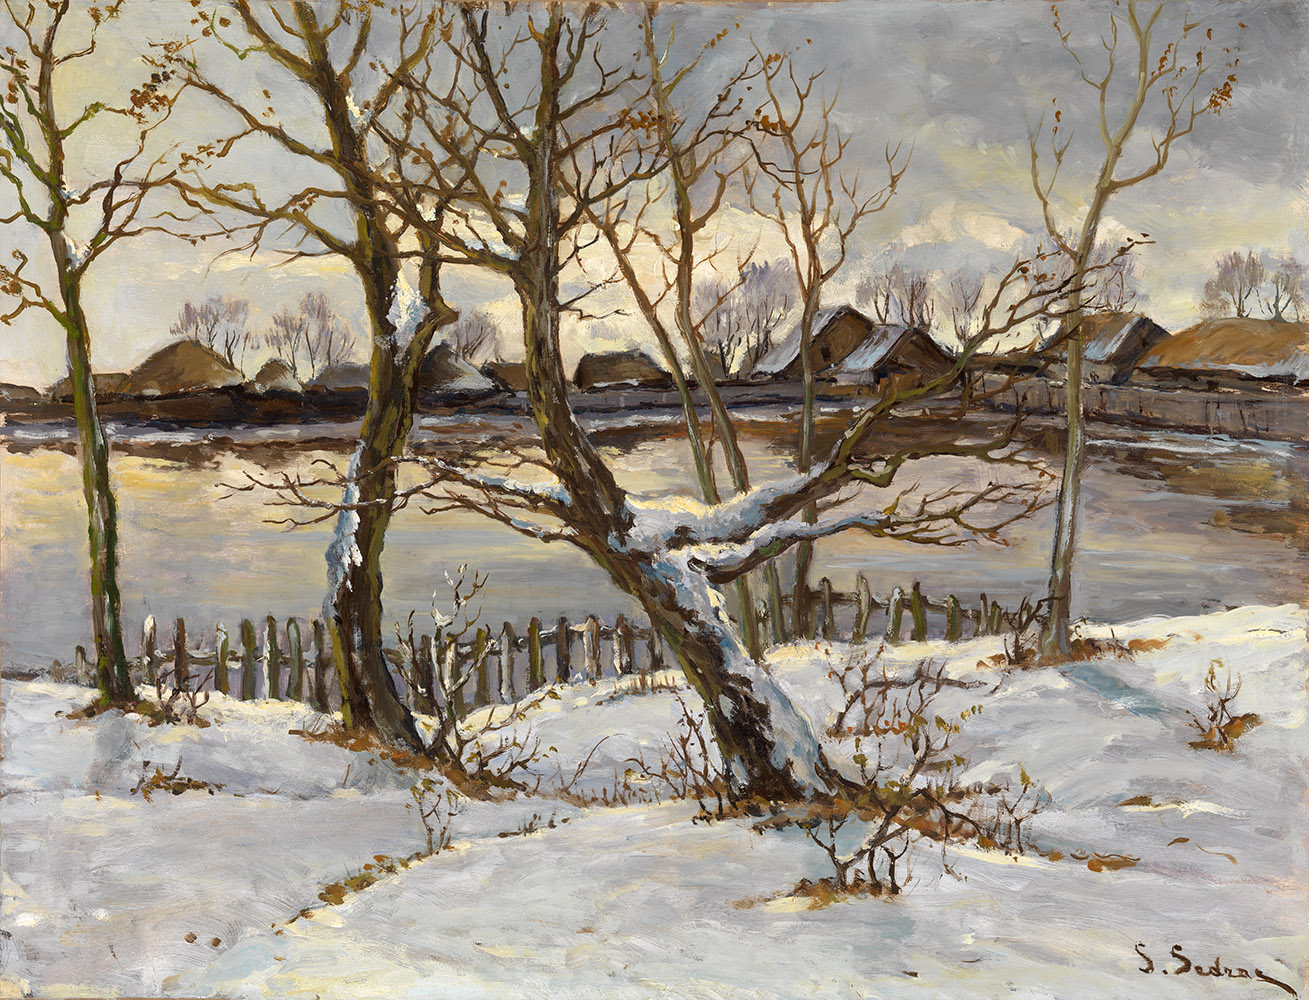 SEDRAC, SERGE Russian Winter